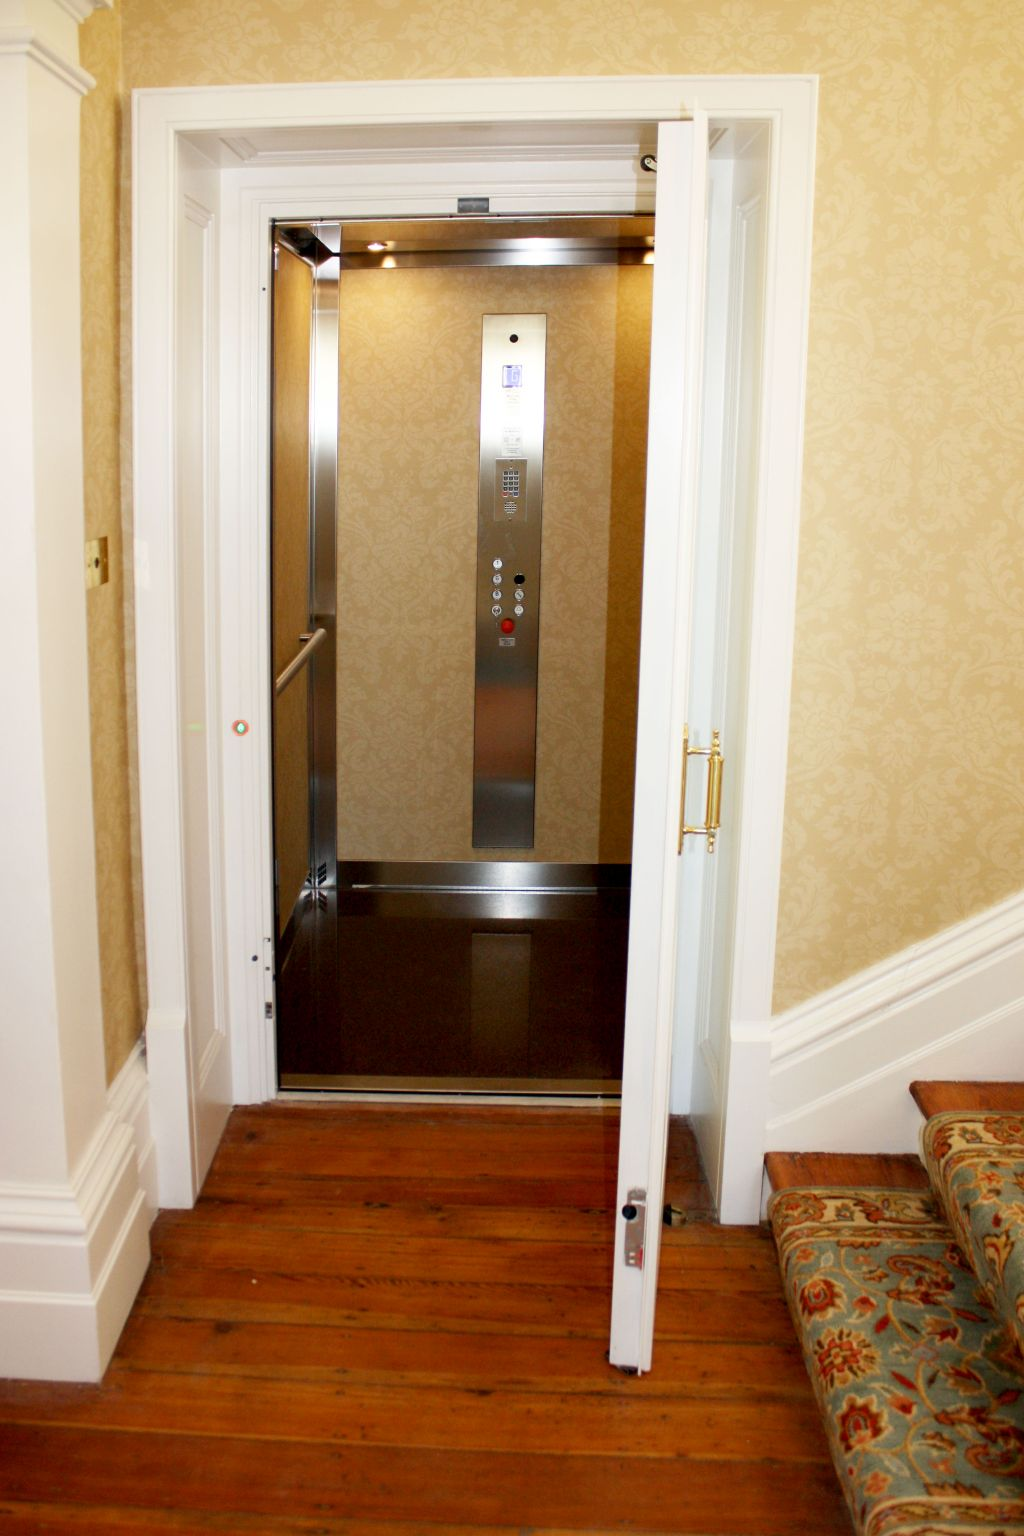 How to personalise a lift cabin ?